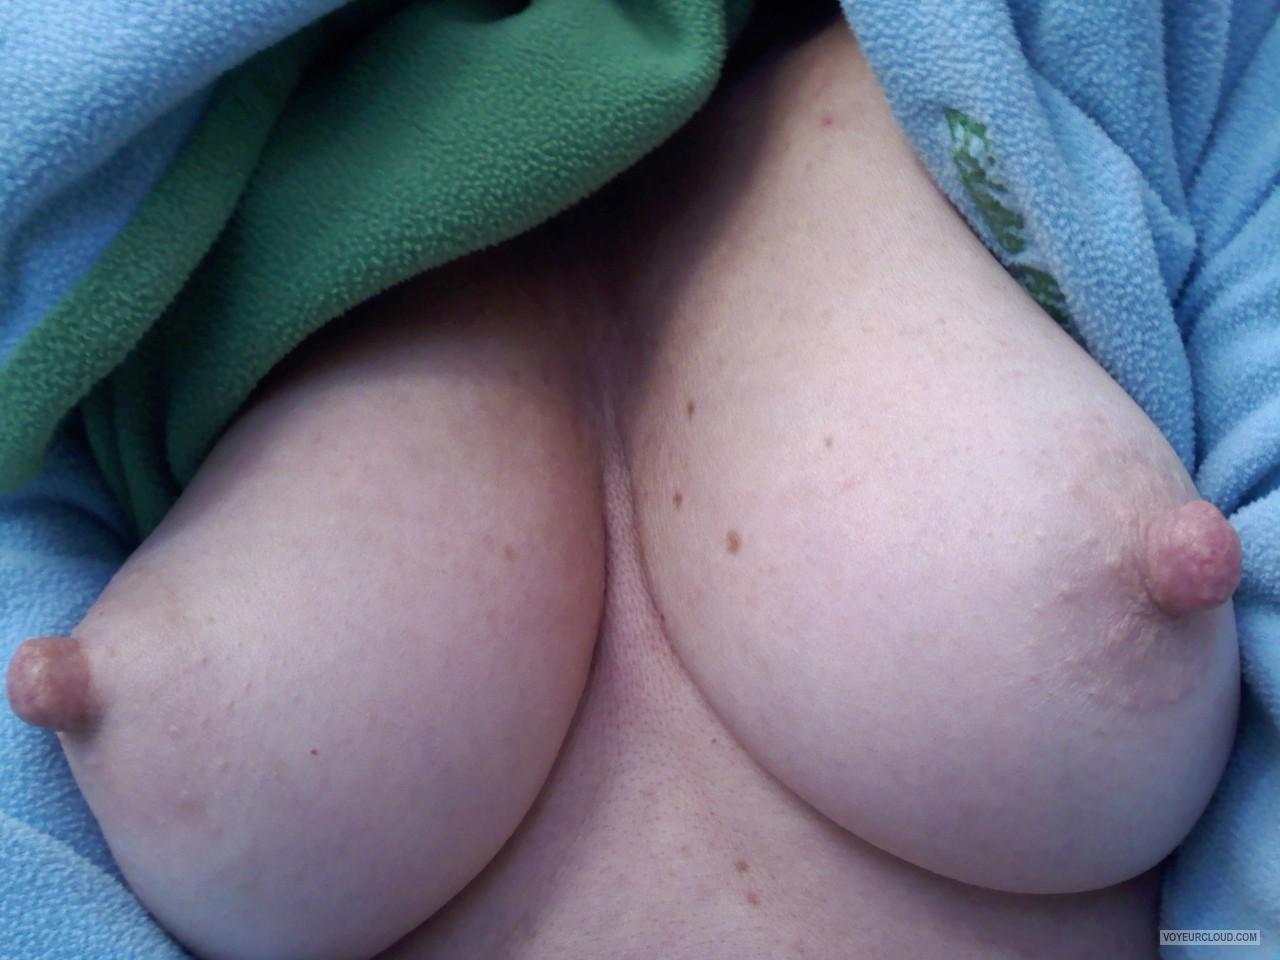 Tit Flash: Wife's Medium Tits - Nice2c from United States